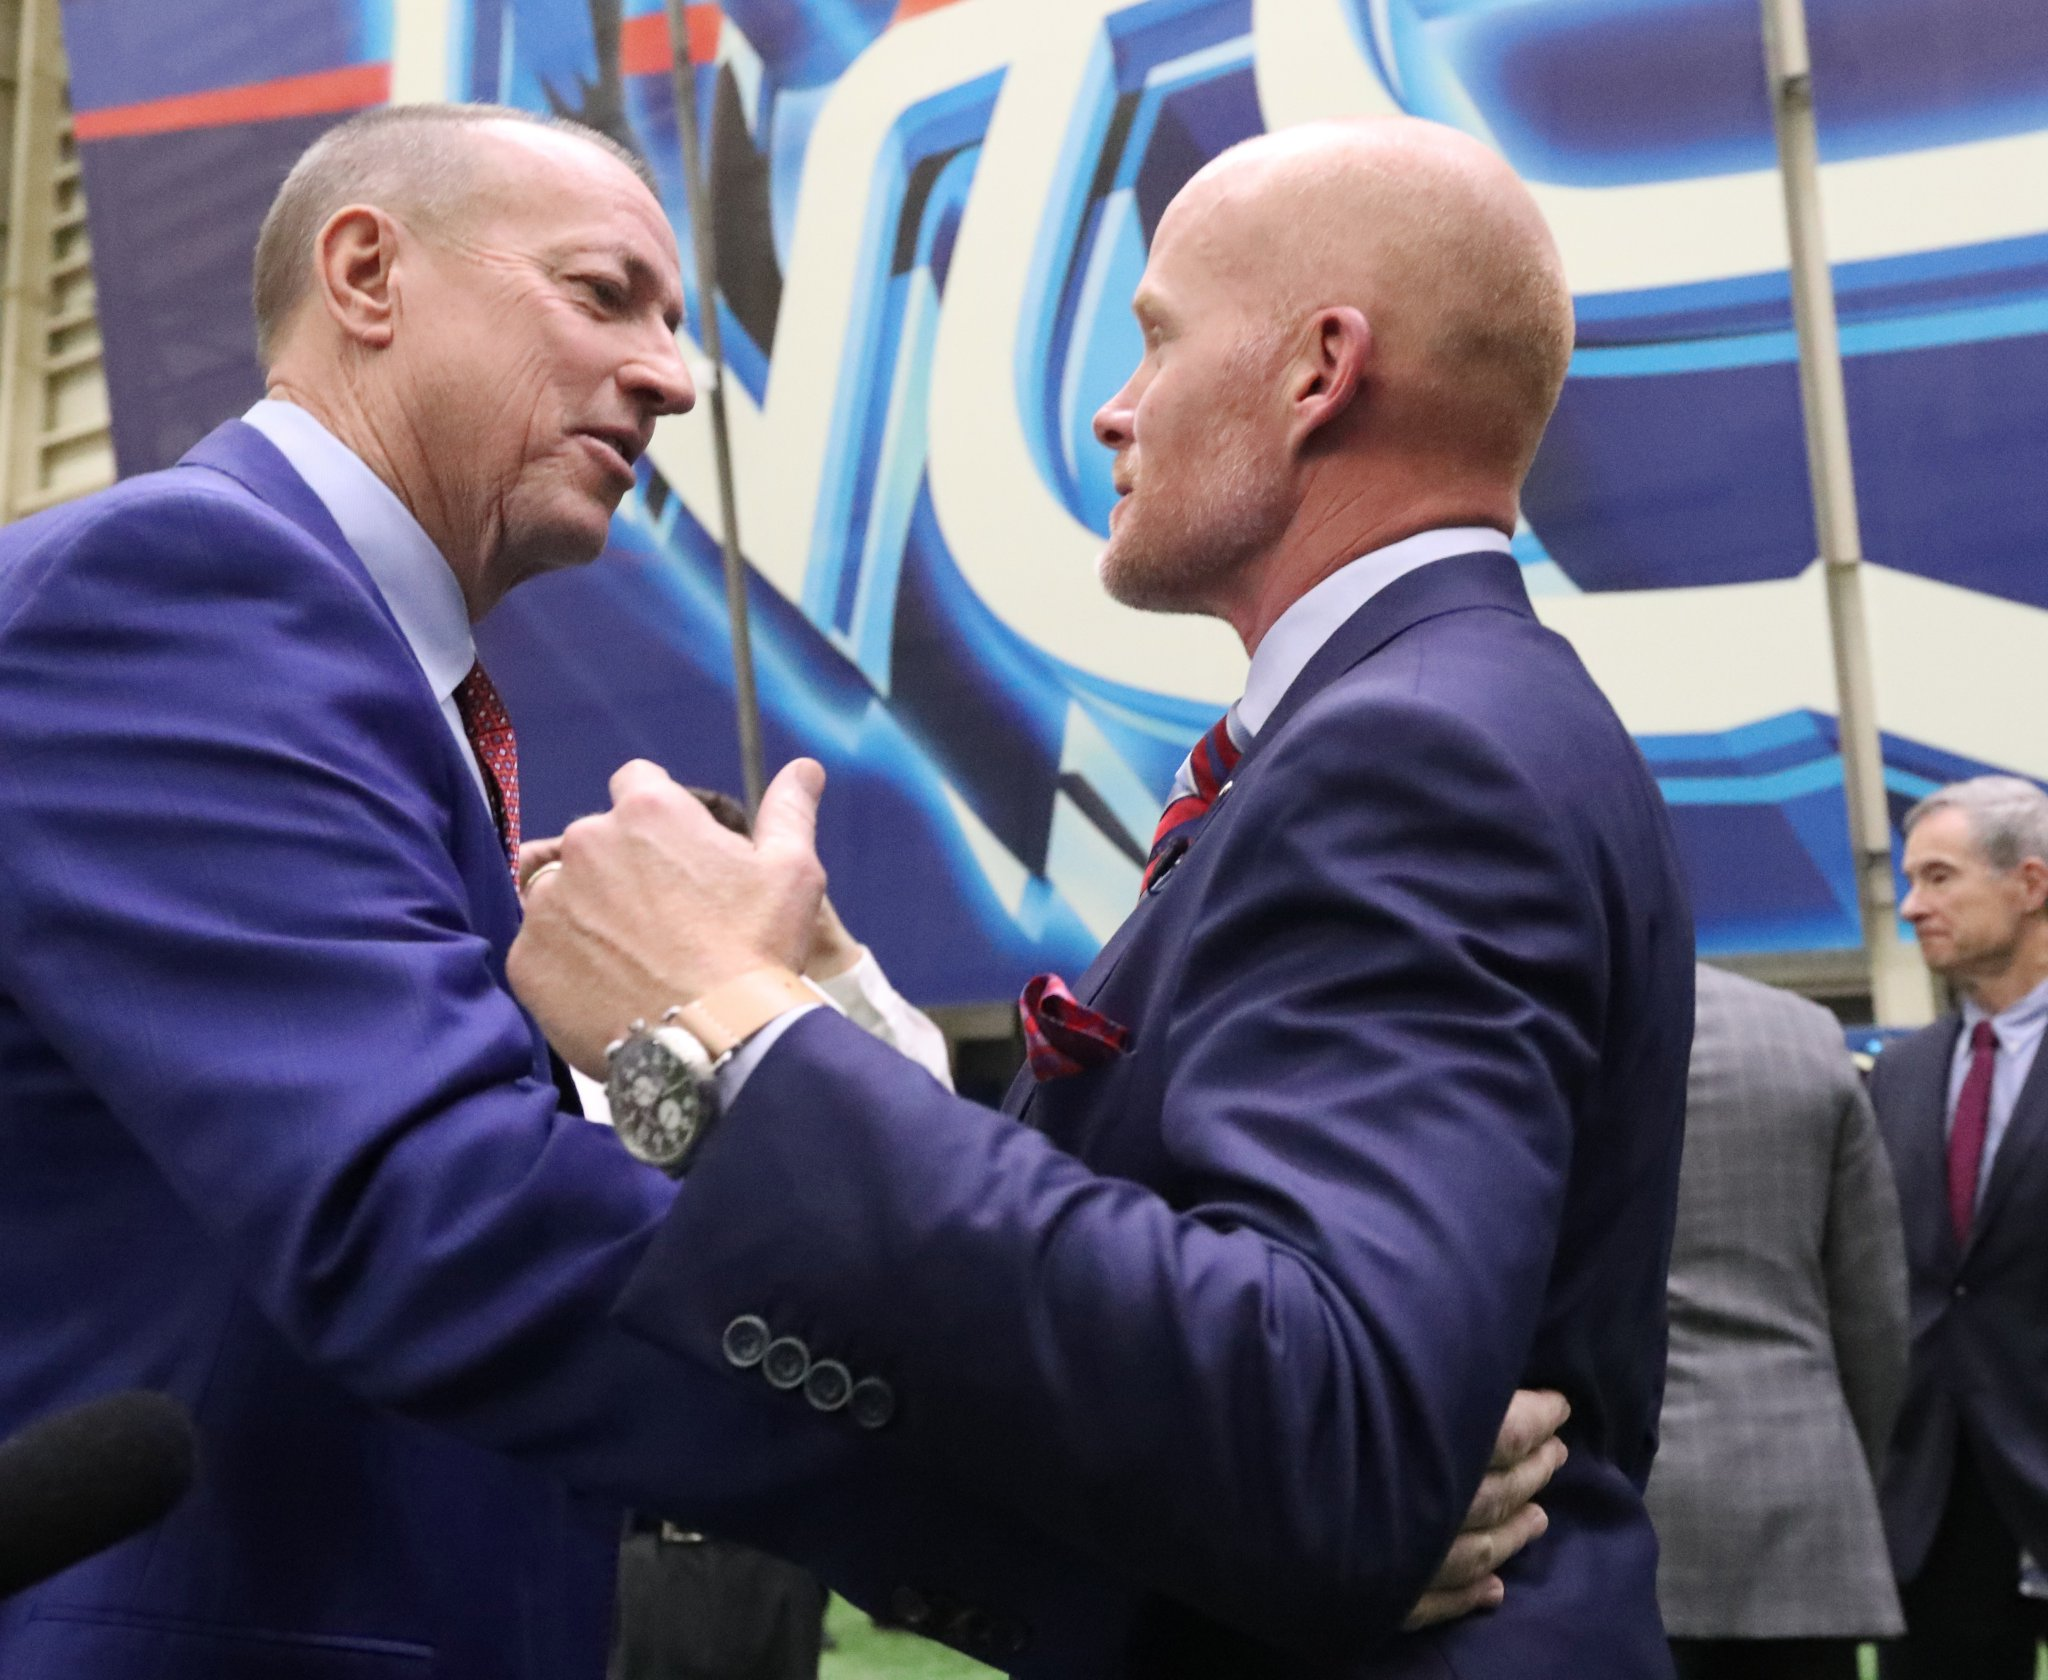 Jim Kelly introduces himself to new Buffalo Bills coach Sean McDermott in January. (James P. McCoy/Buffalo News)